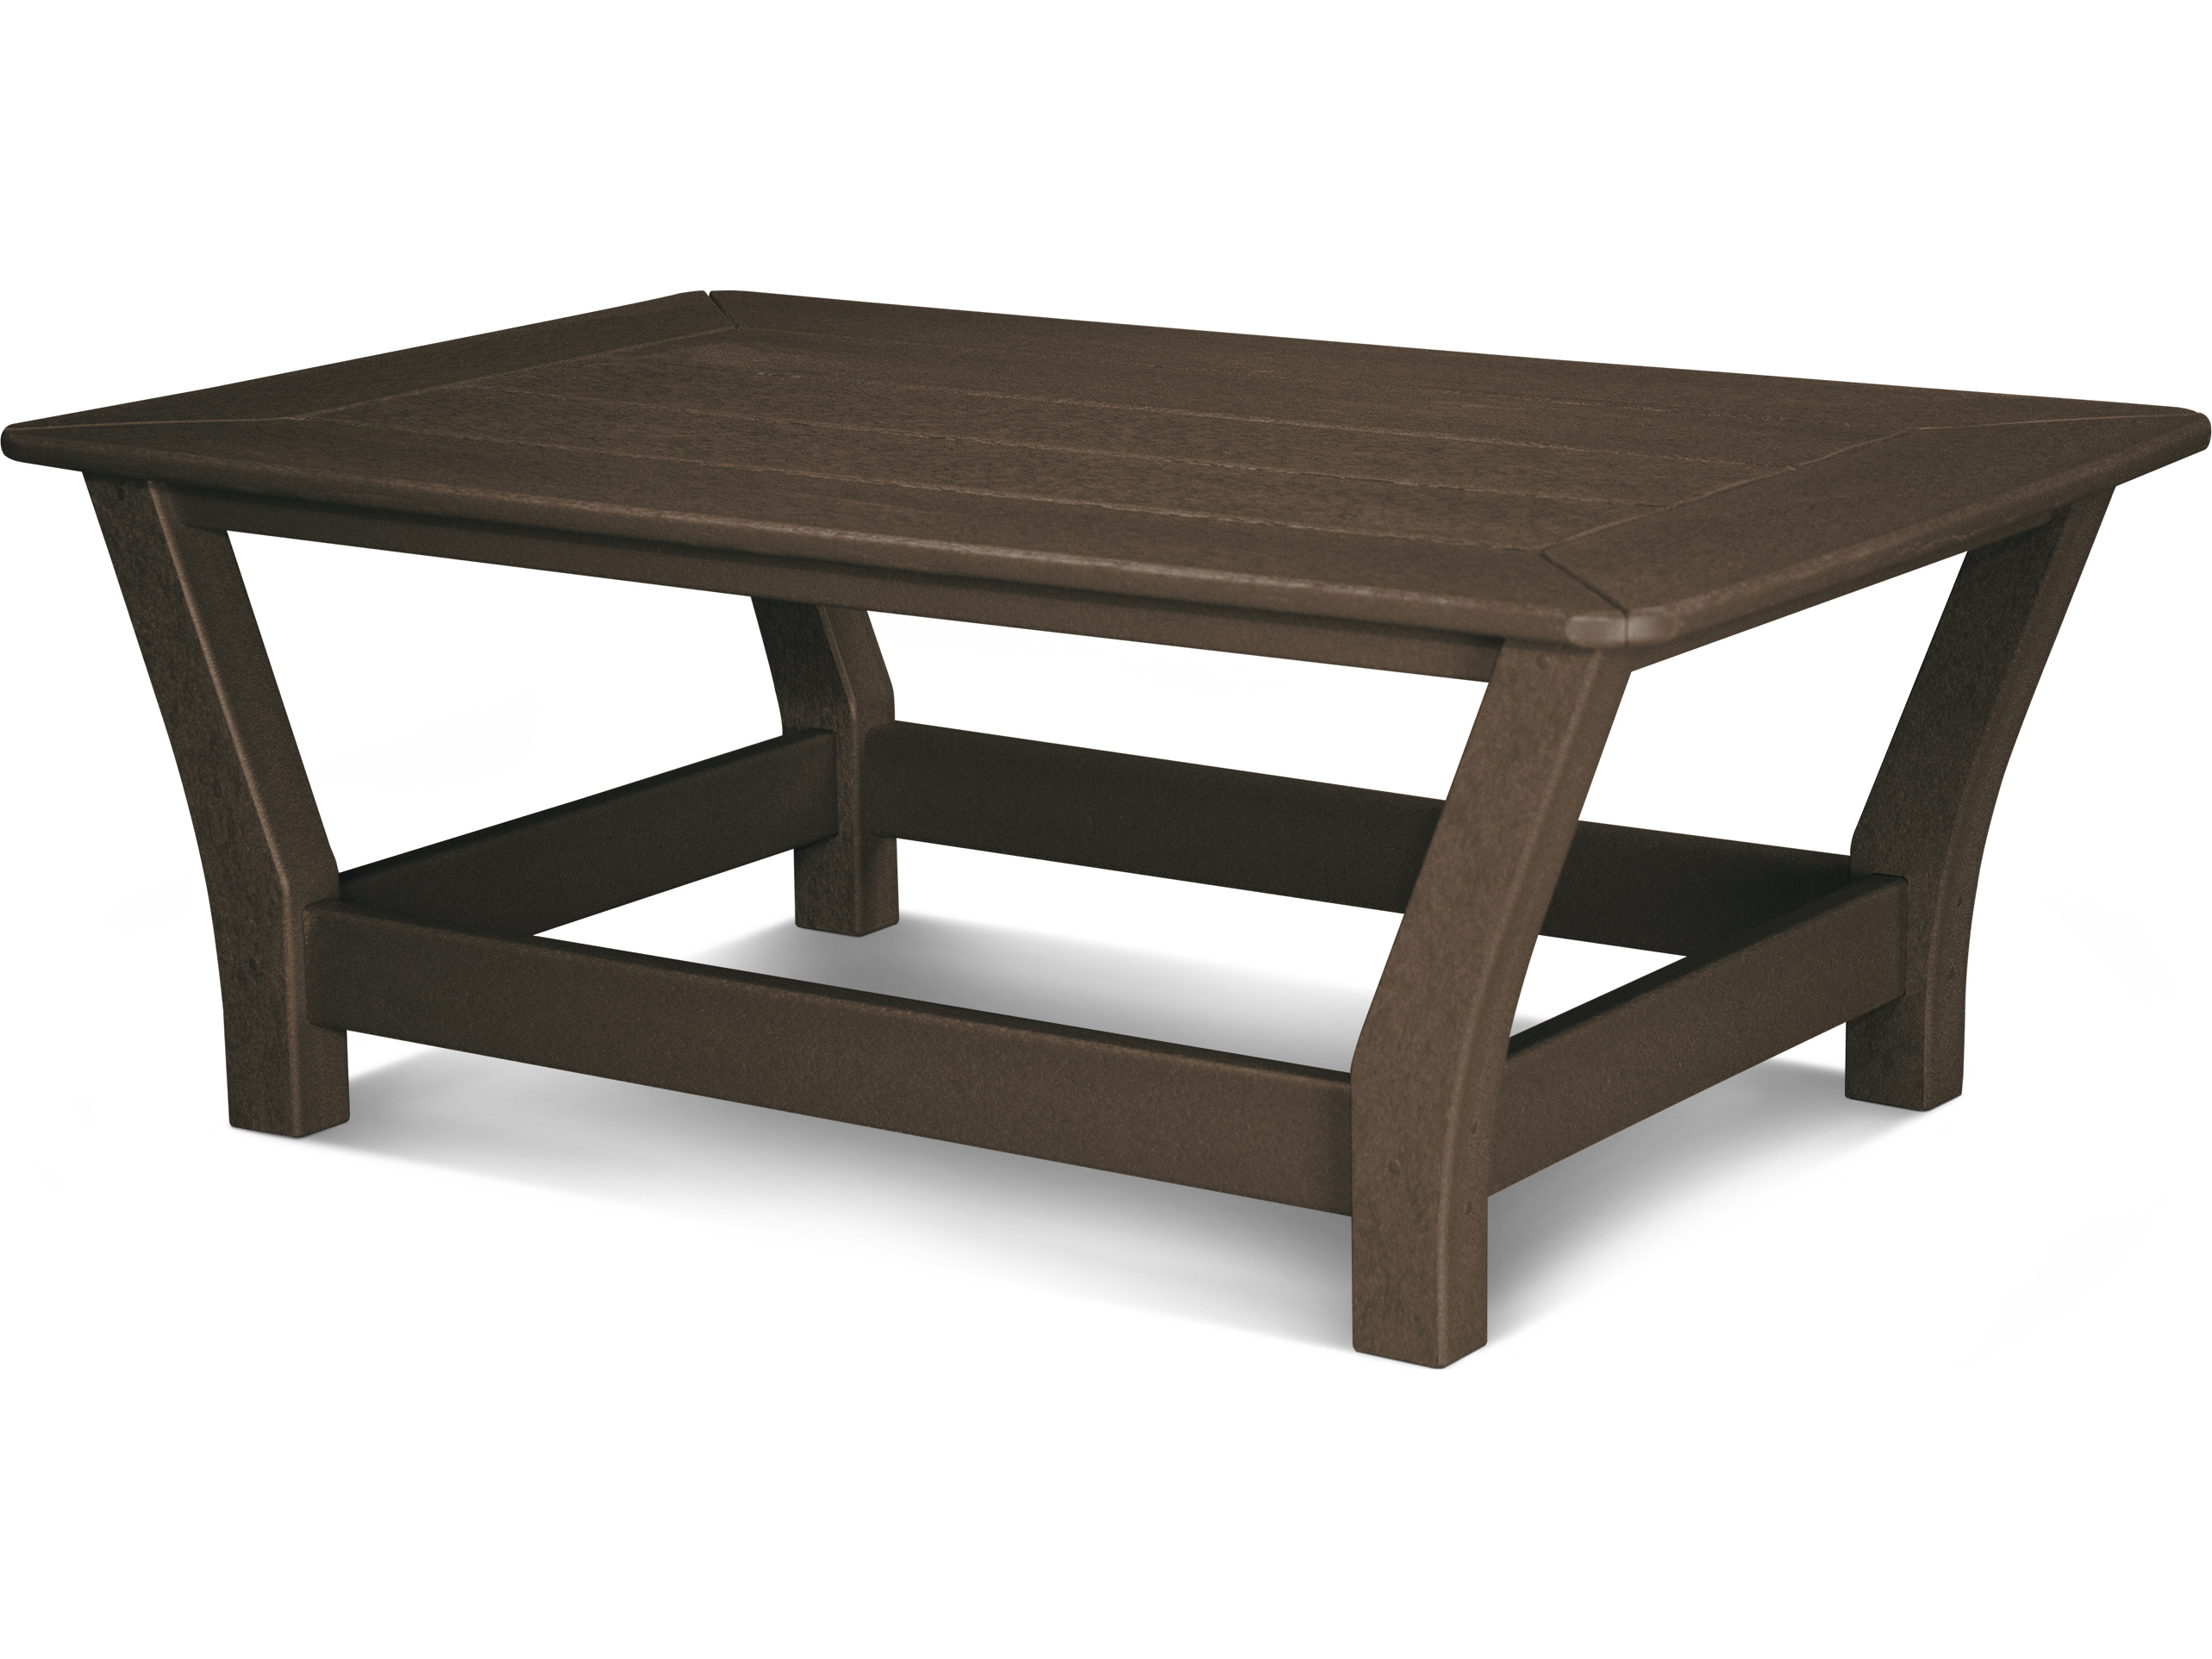 Harbour Recycled Plastic 44 X 27 Rectangular Slat Coffee Table 4019